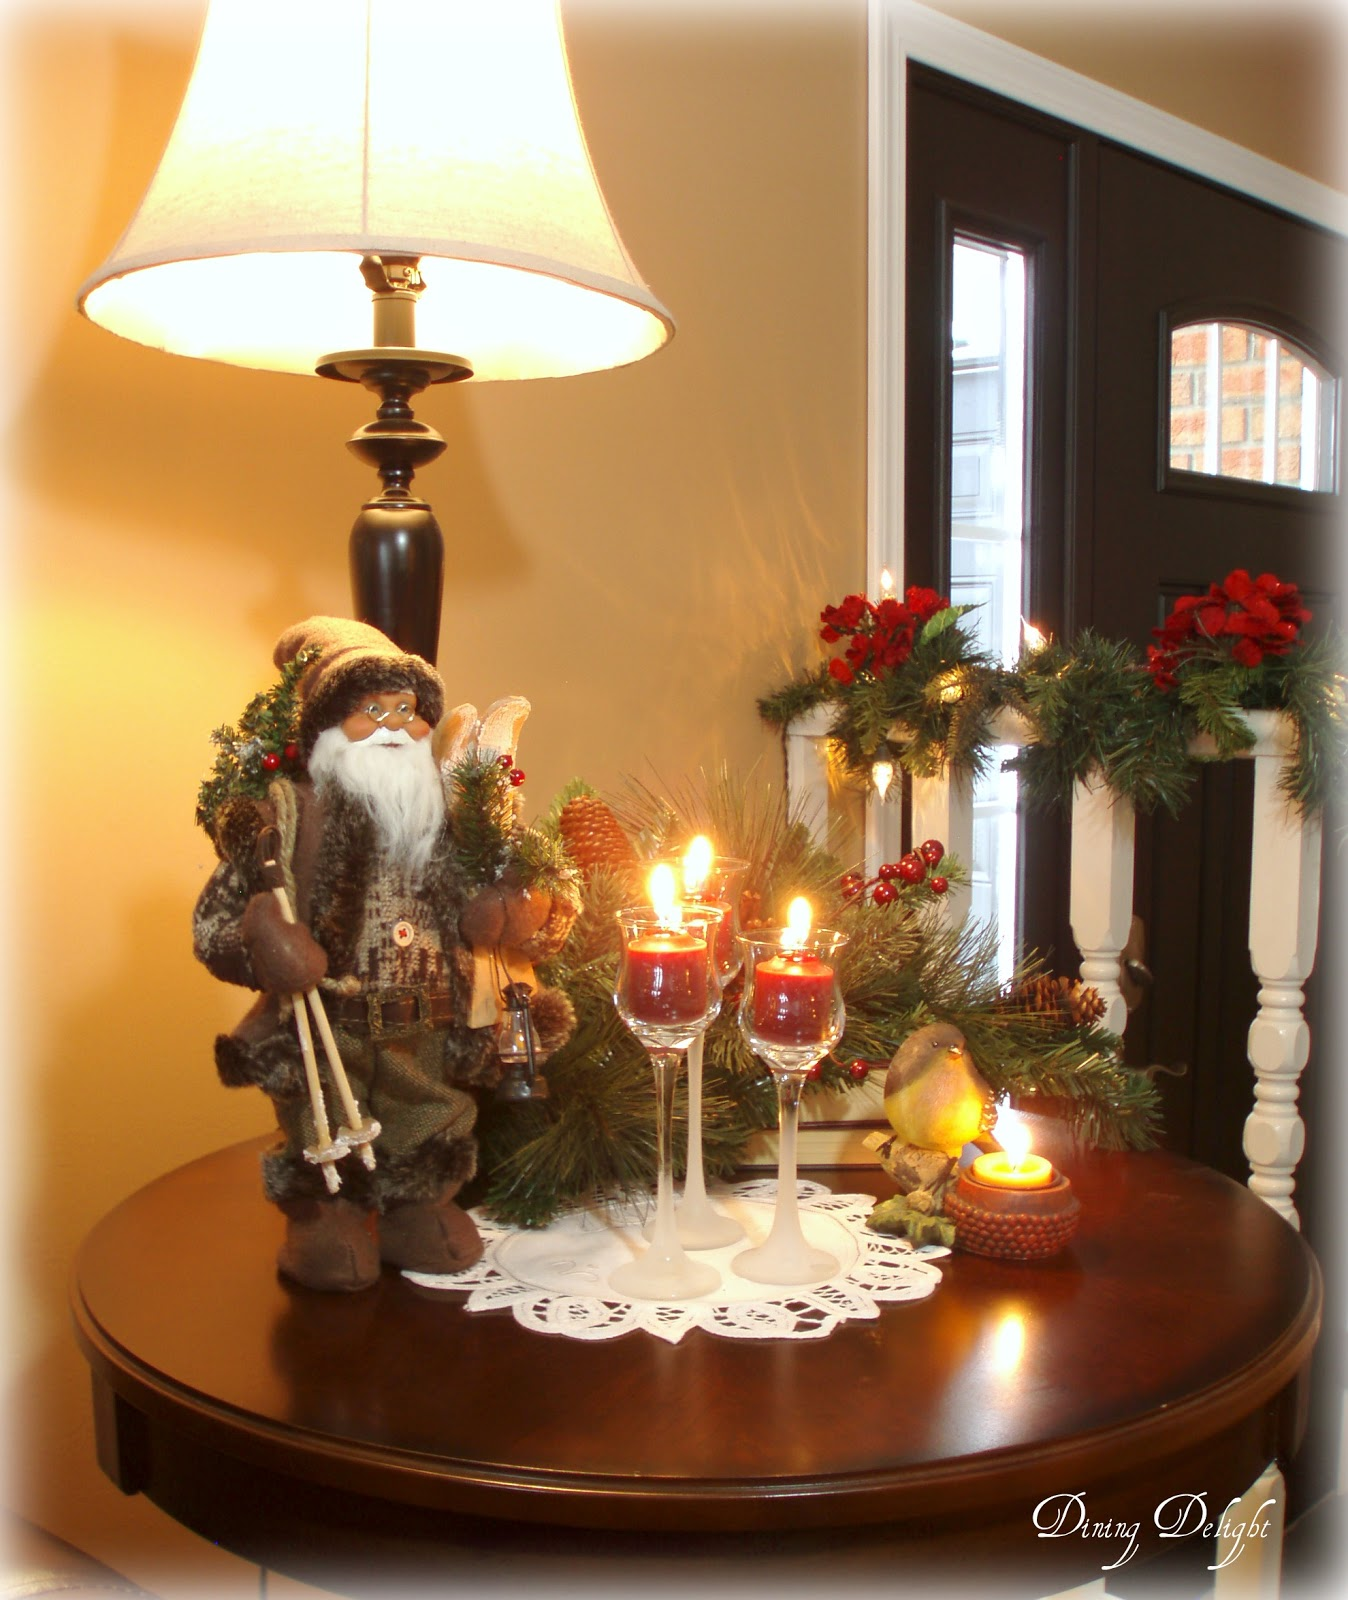 Dining Delight Christmas Home Tour